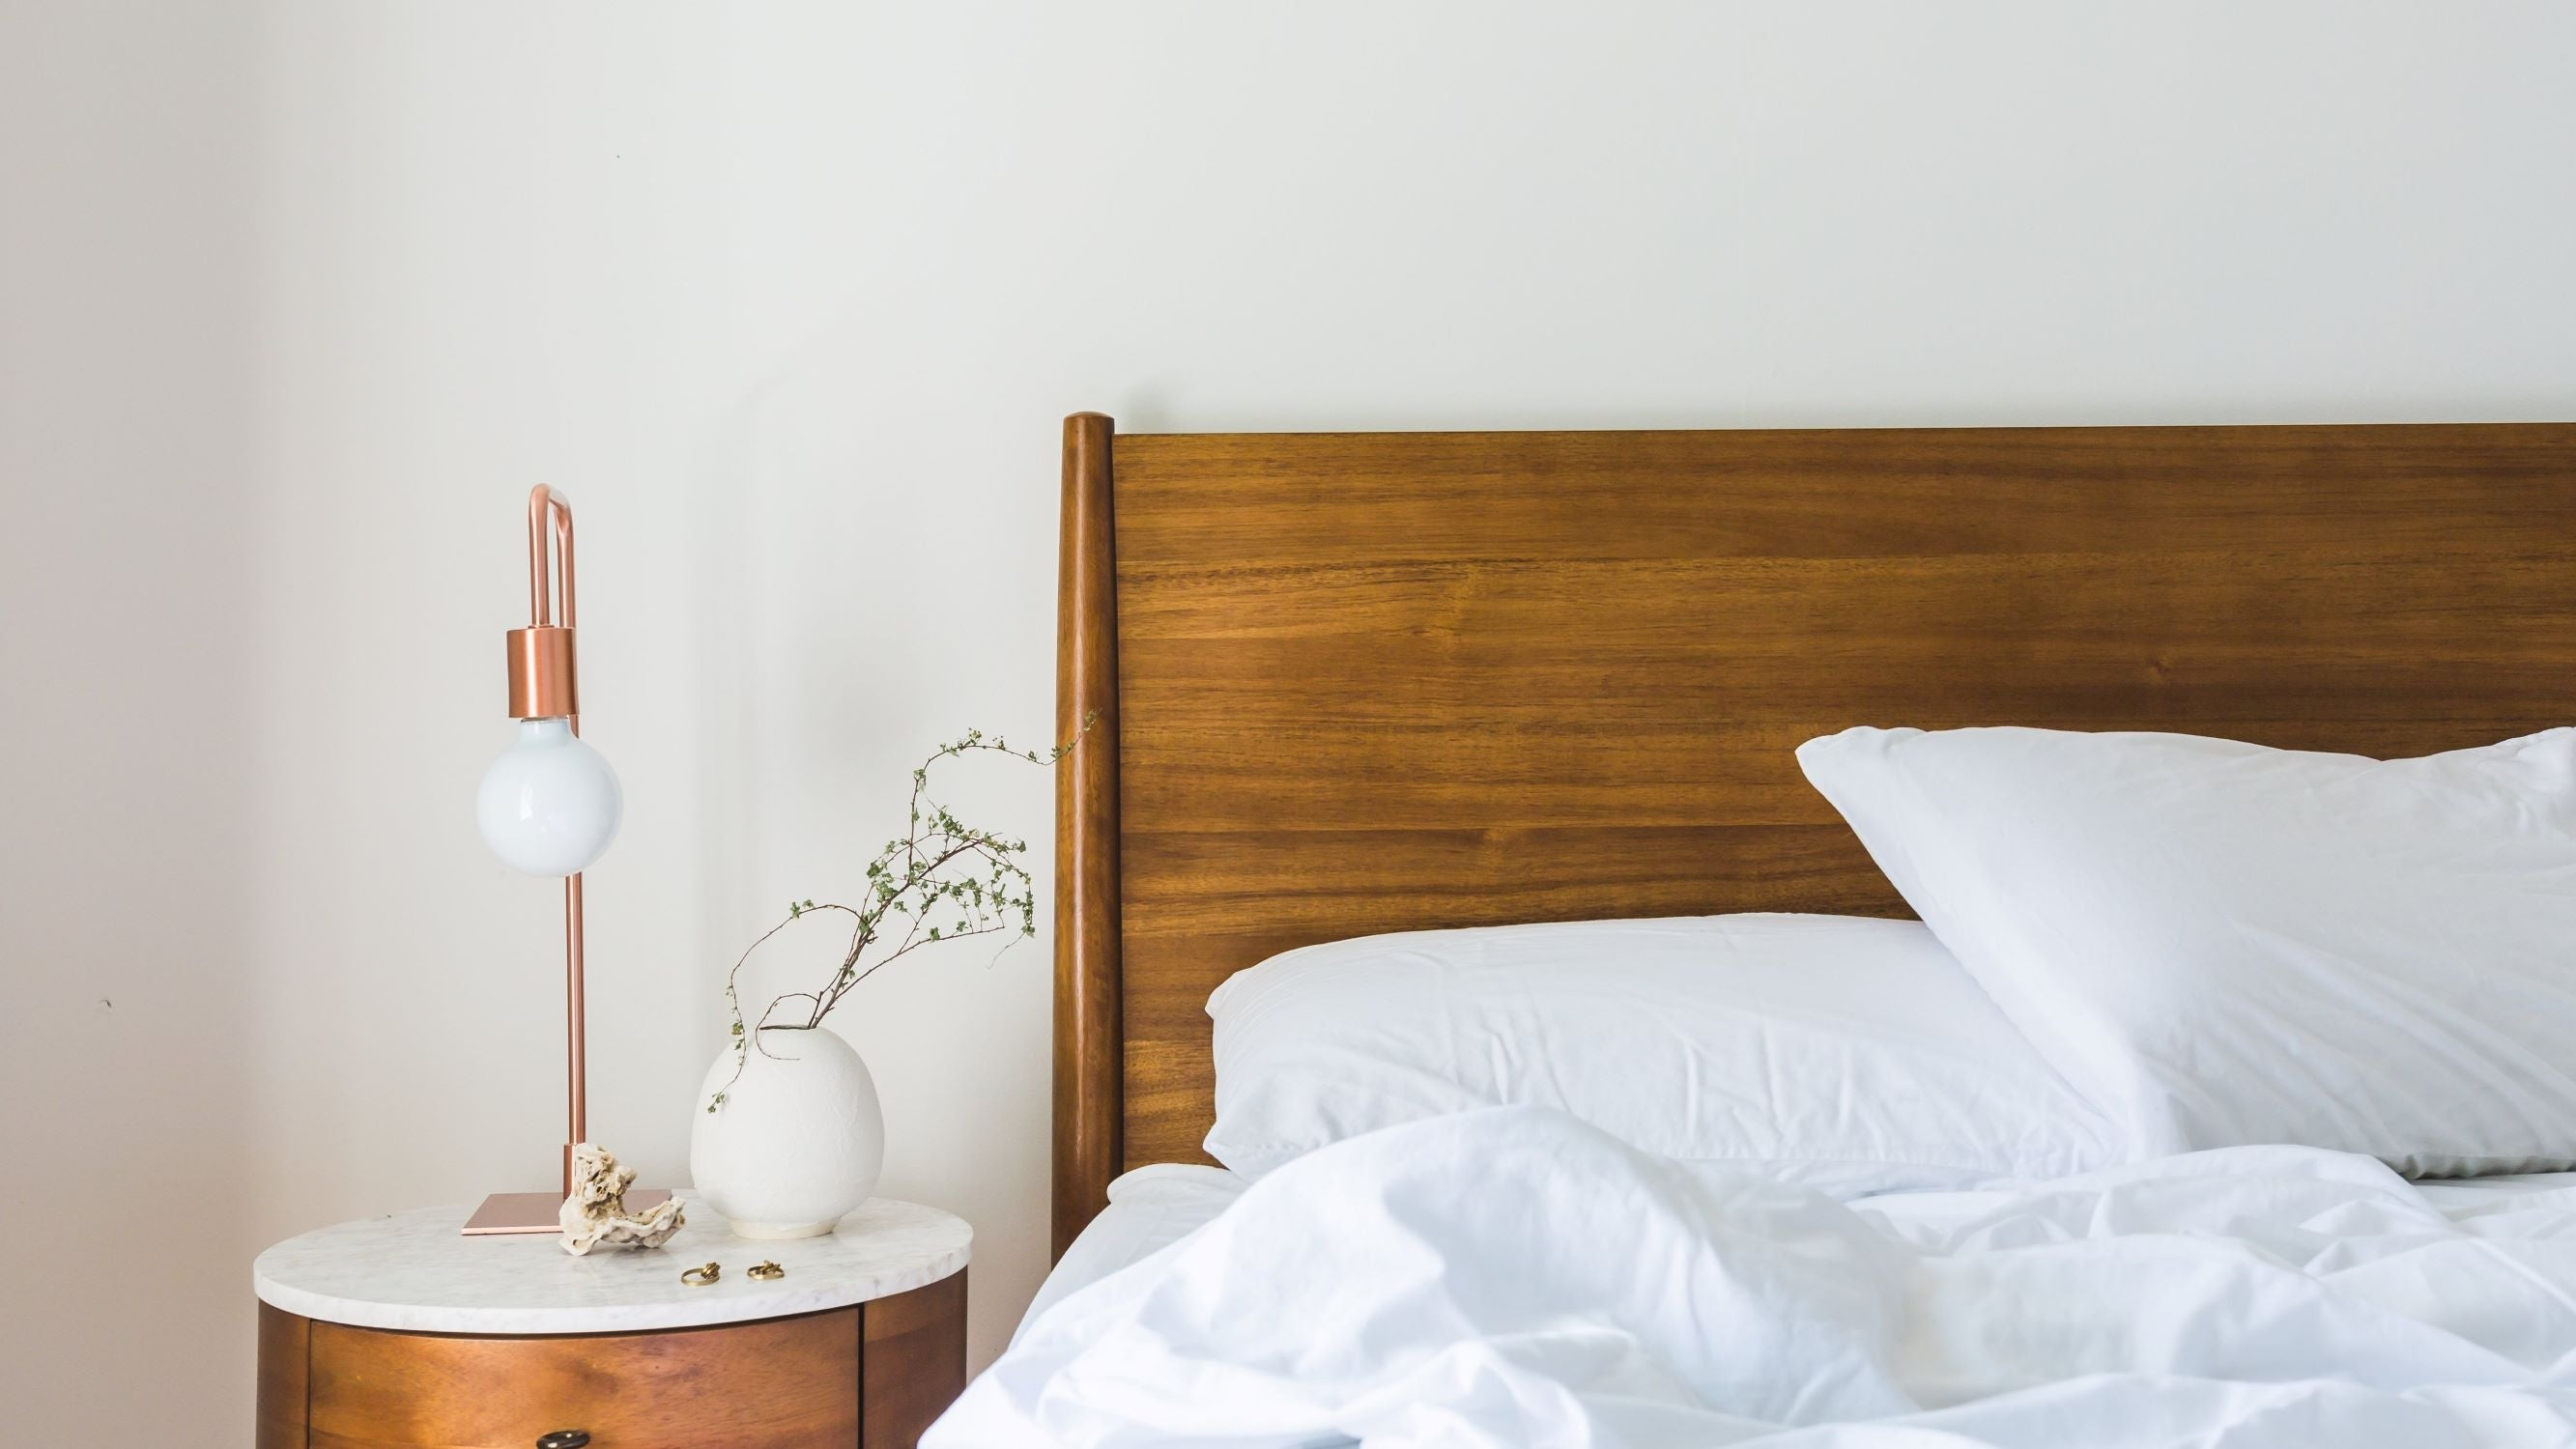 Bed with wooden headboard, white sheets, nightstand with lamp